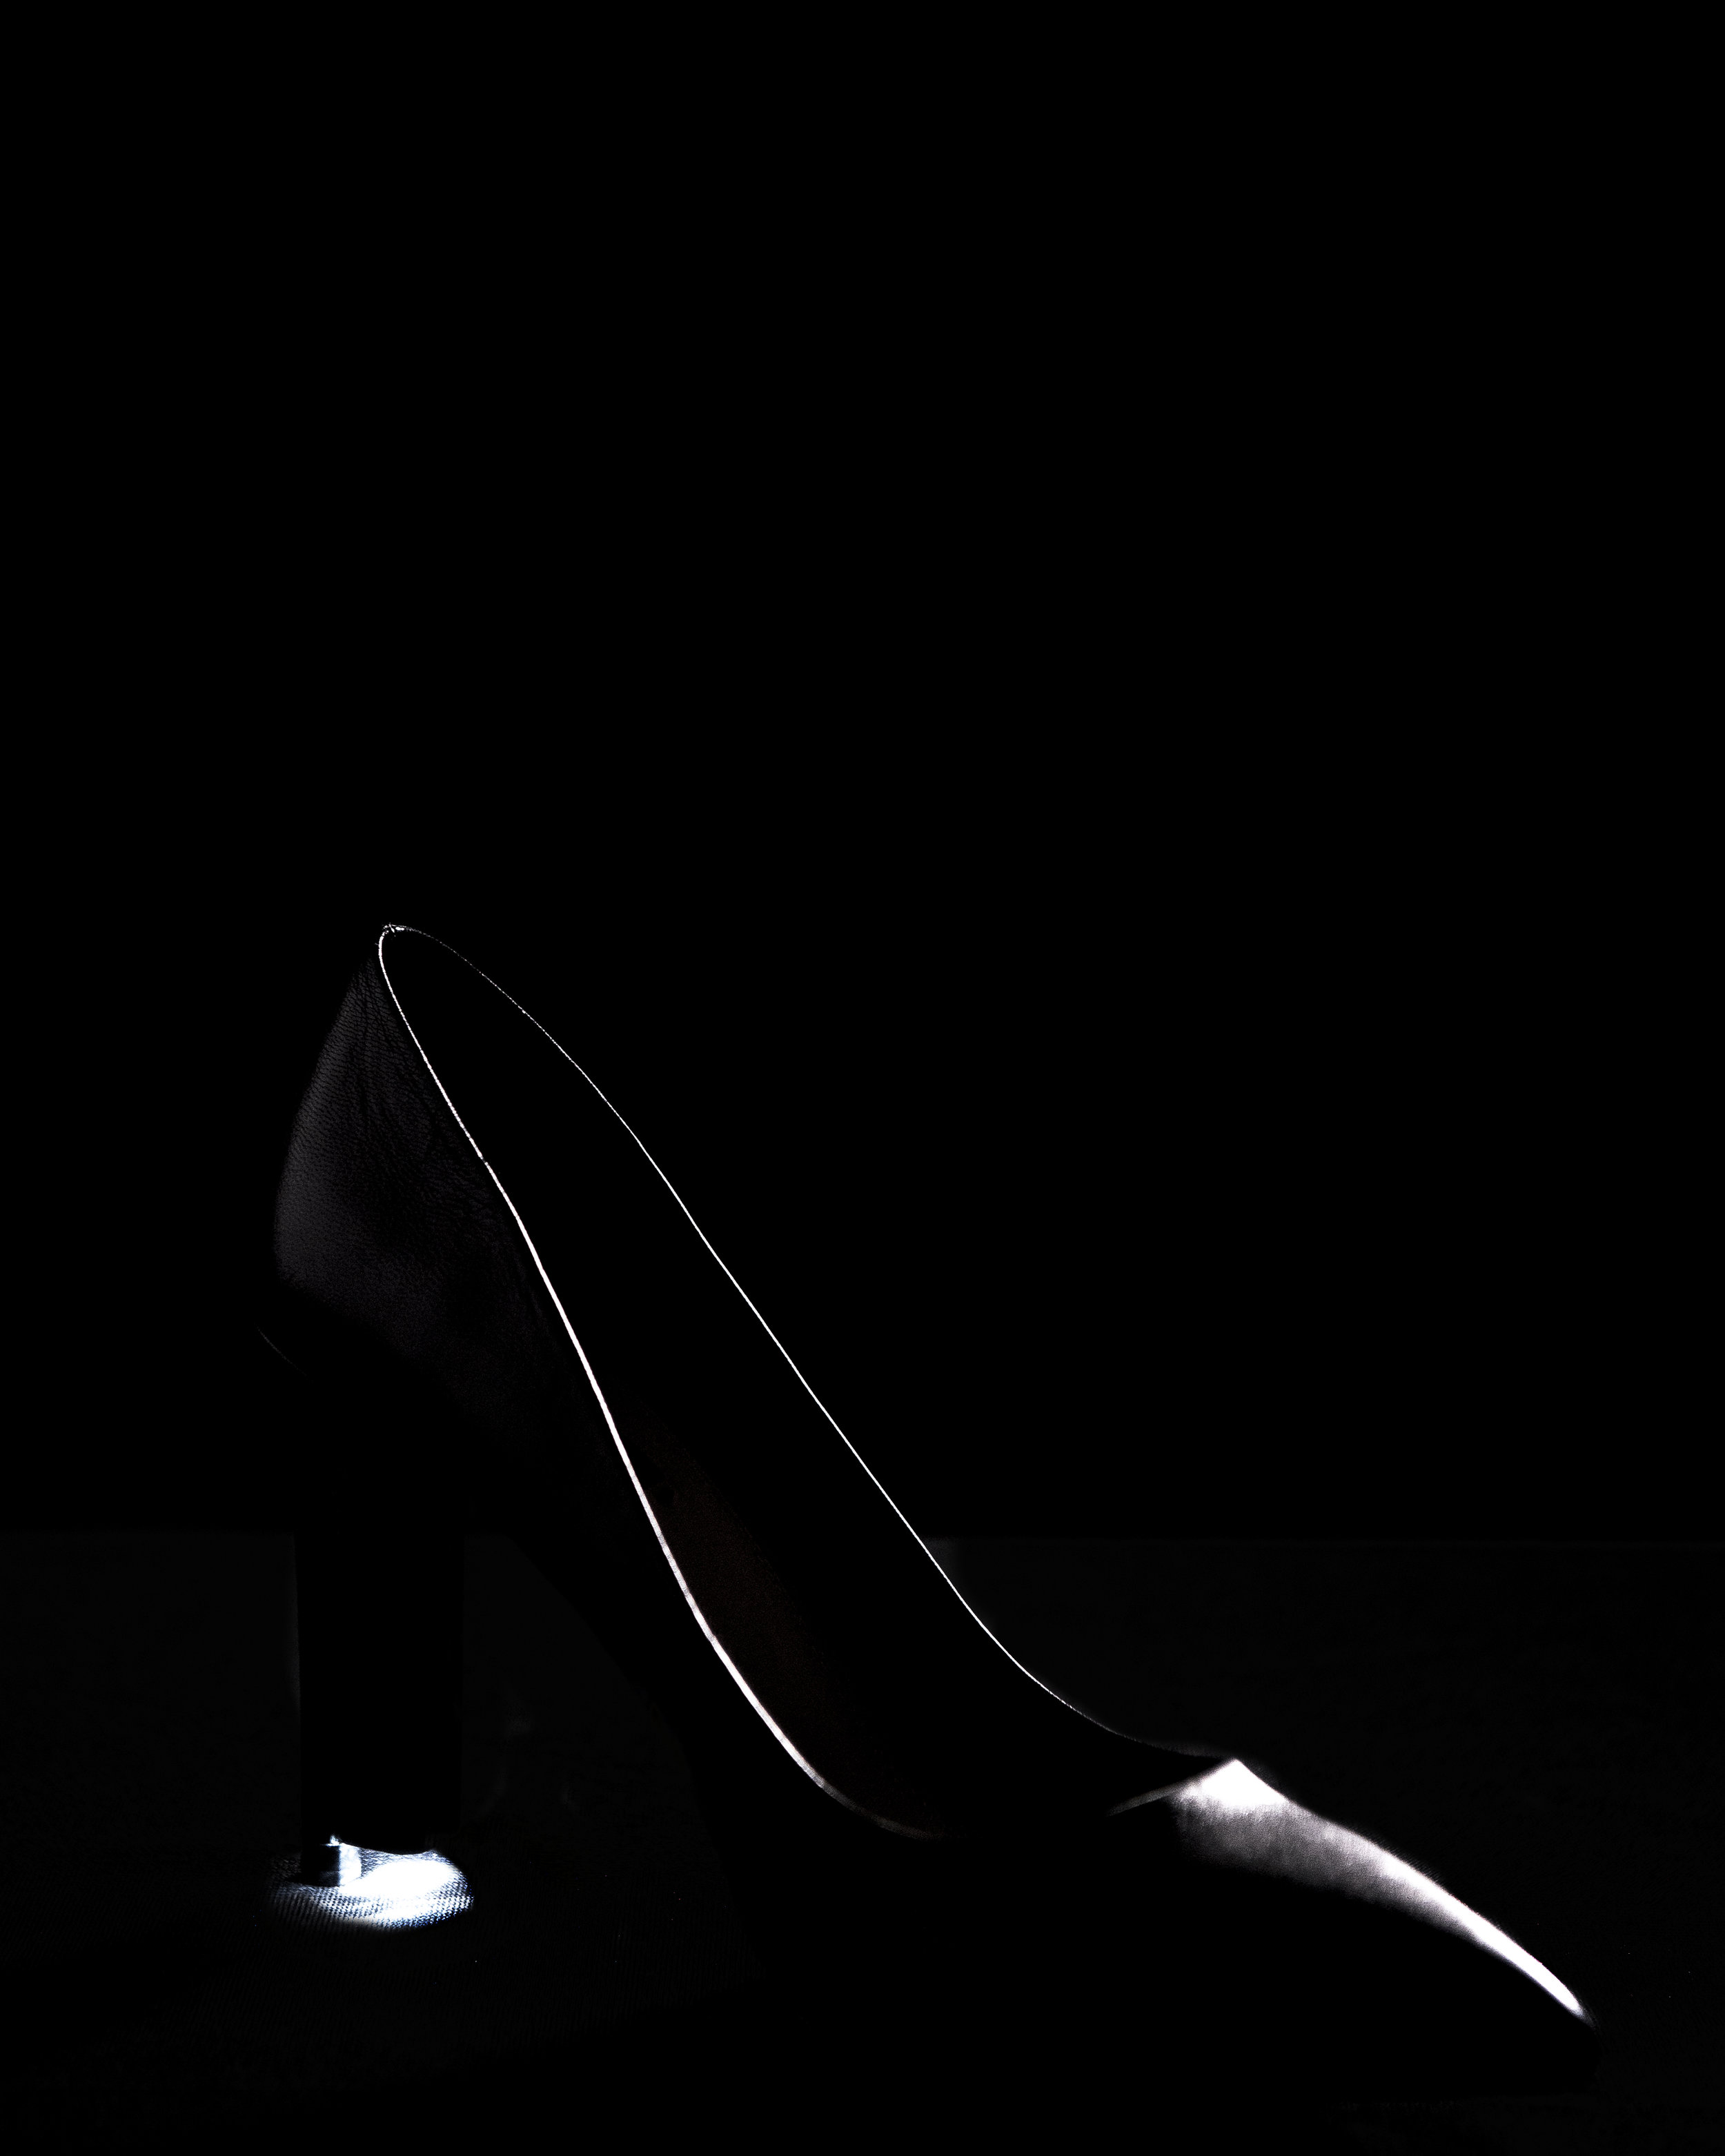 CM12_shoe_2_by_Thomas_Portier_credit_Jerome_duikers.jpg